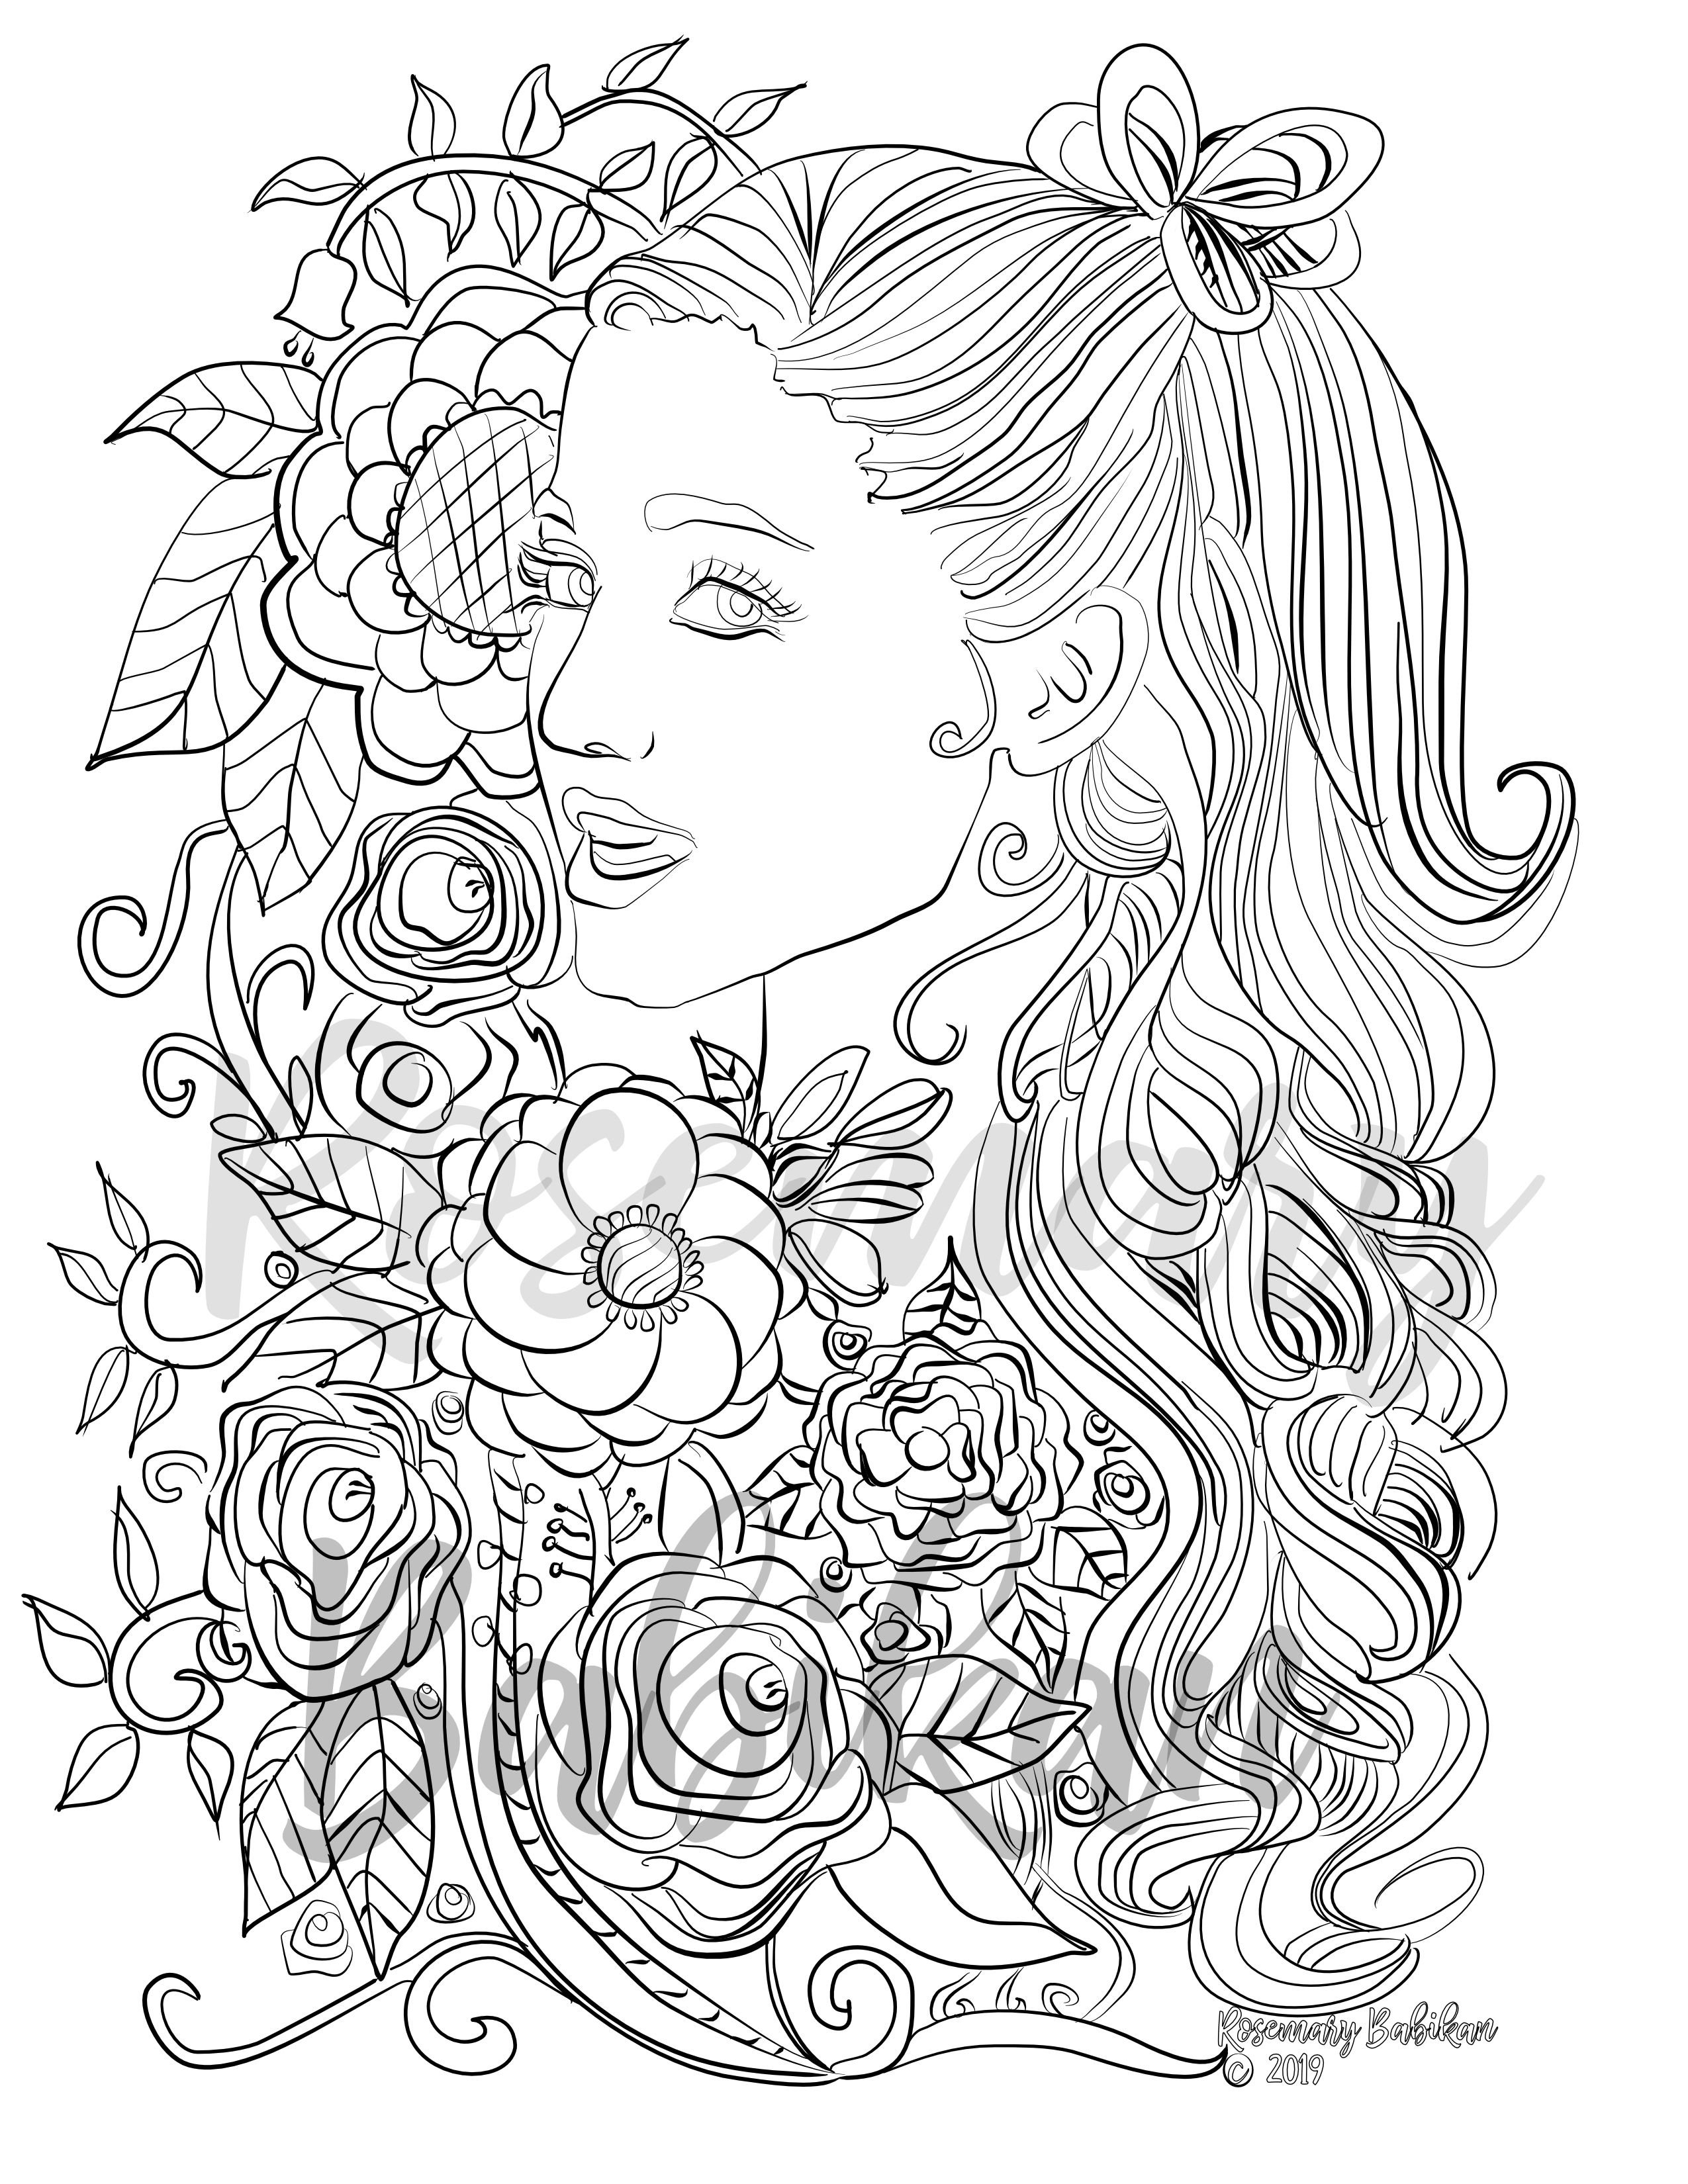 Instant Digital Download Adult Coloring Page Inspired By Ariana